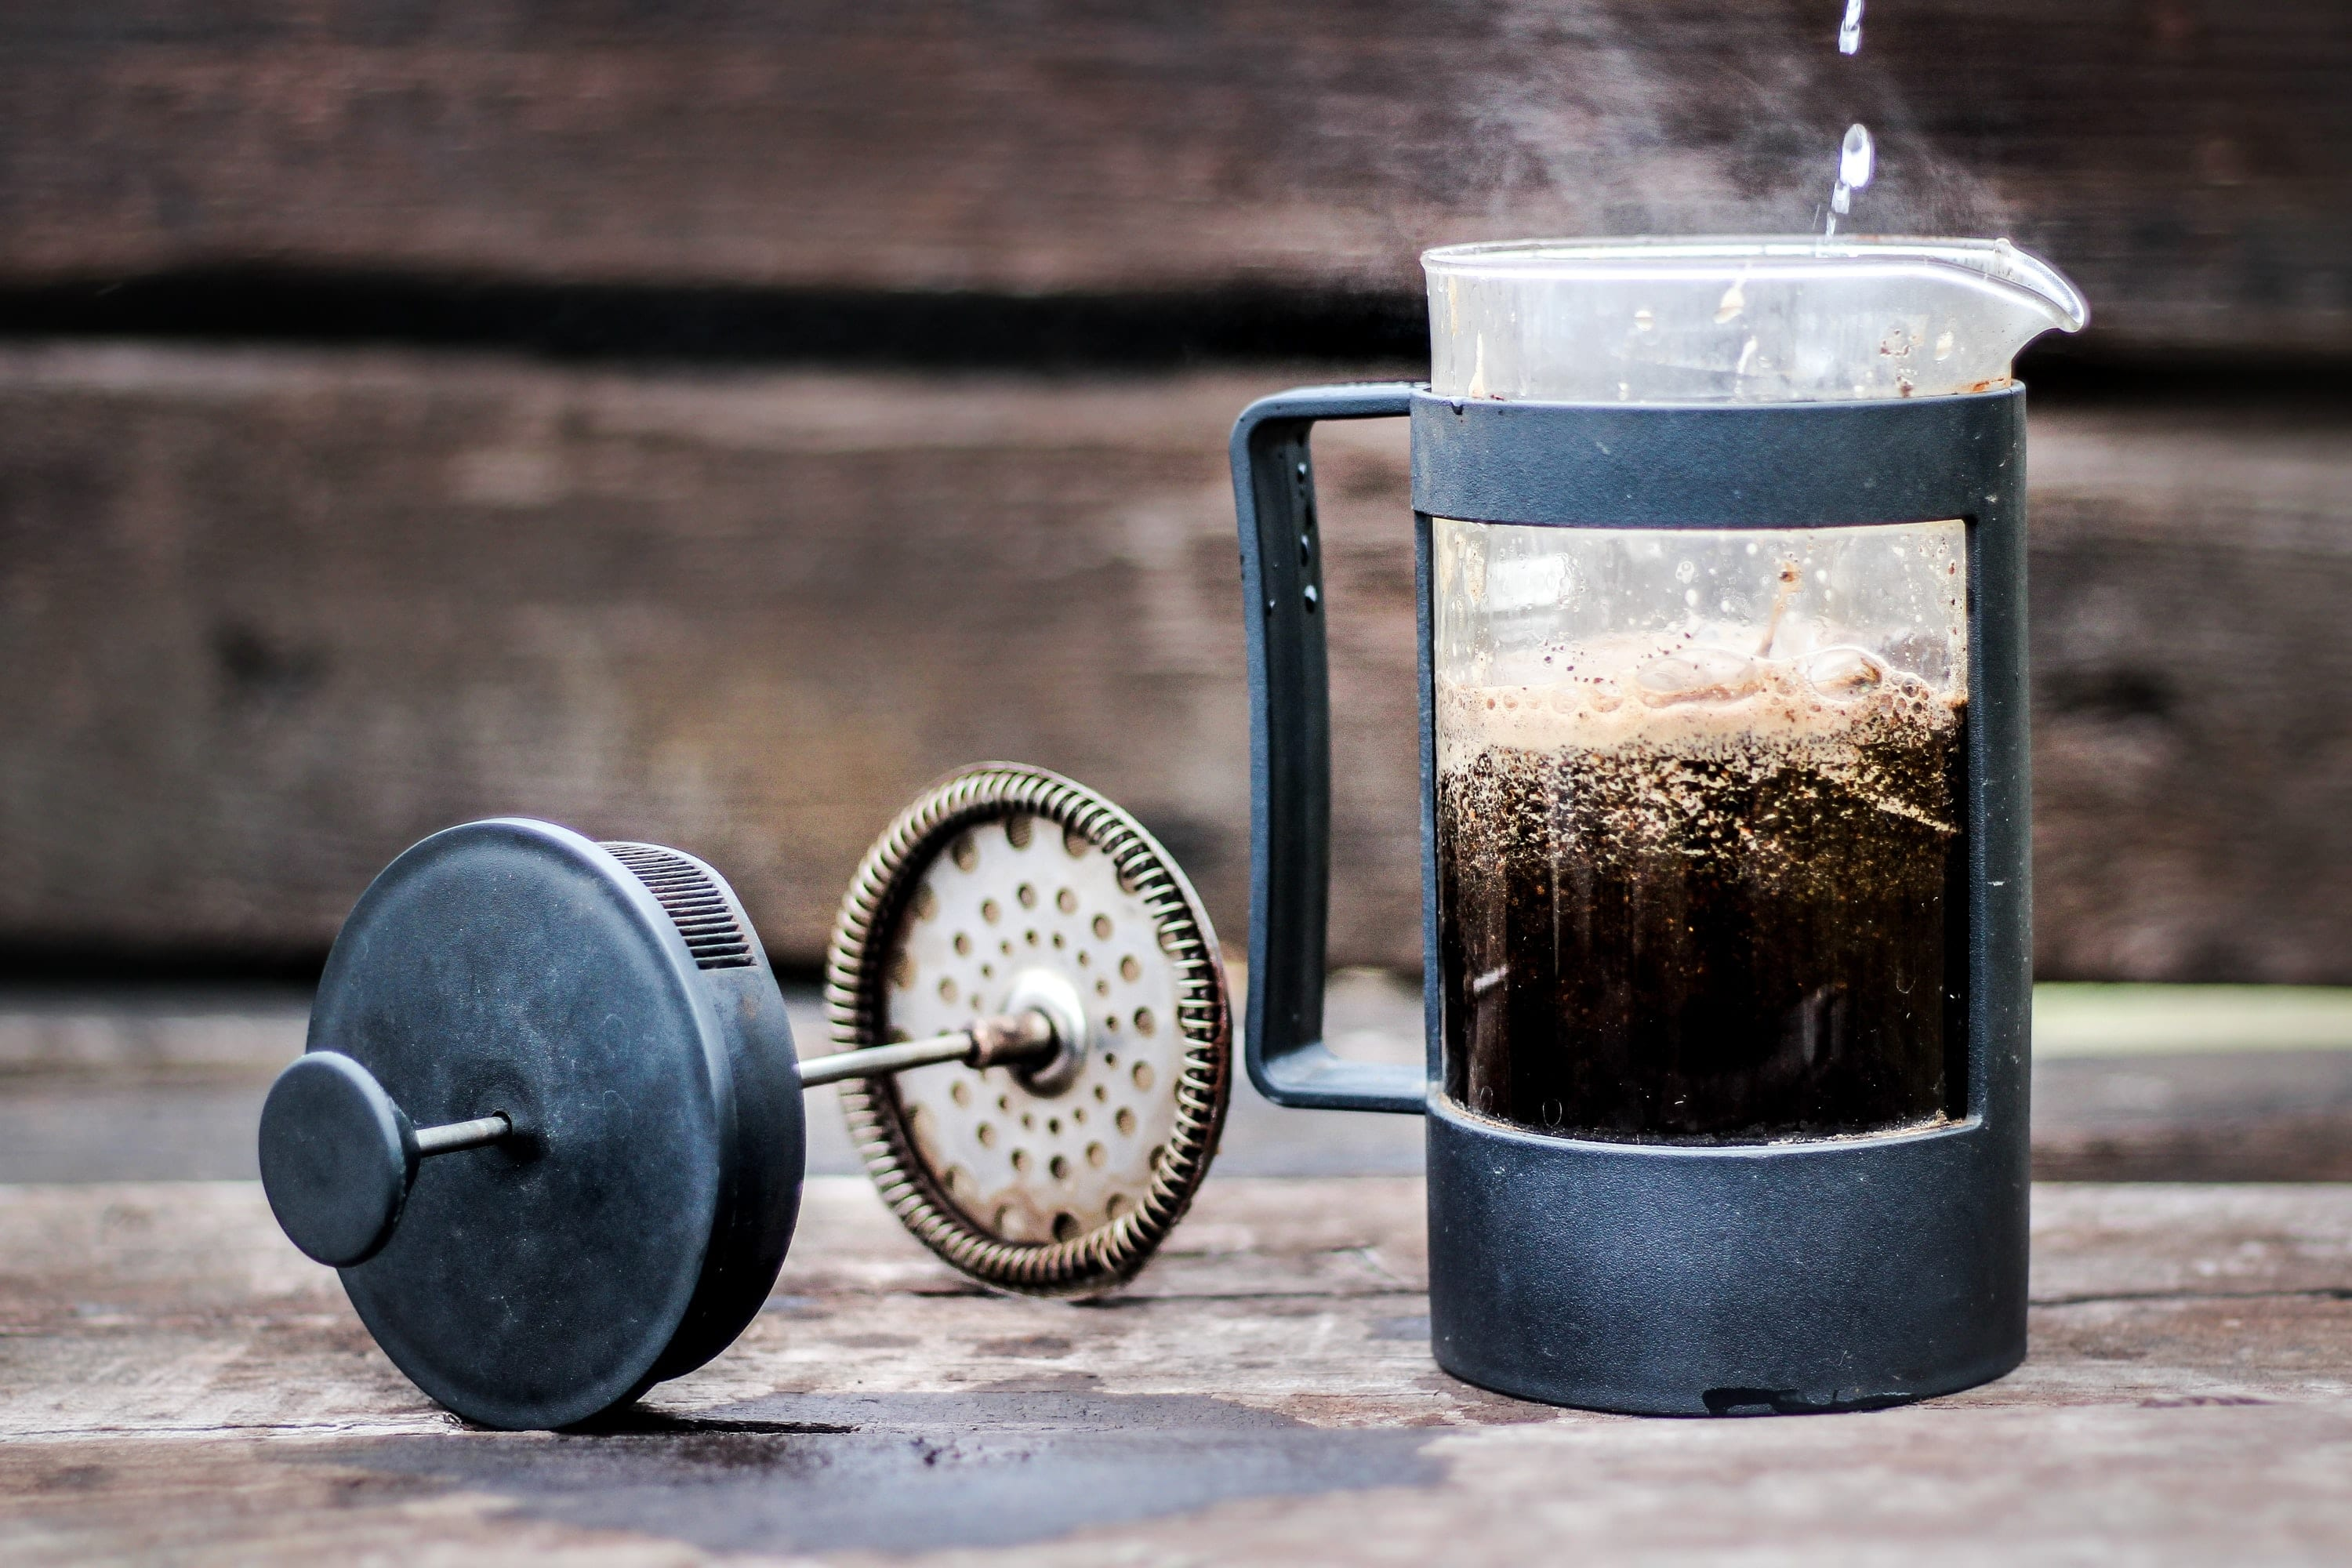 making tea in a french press